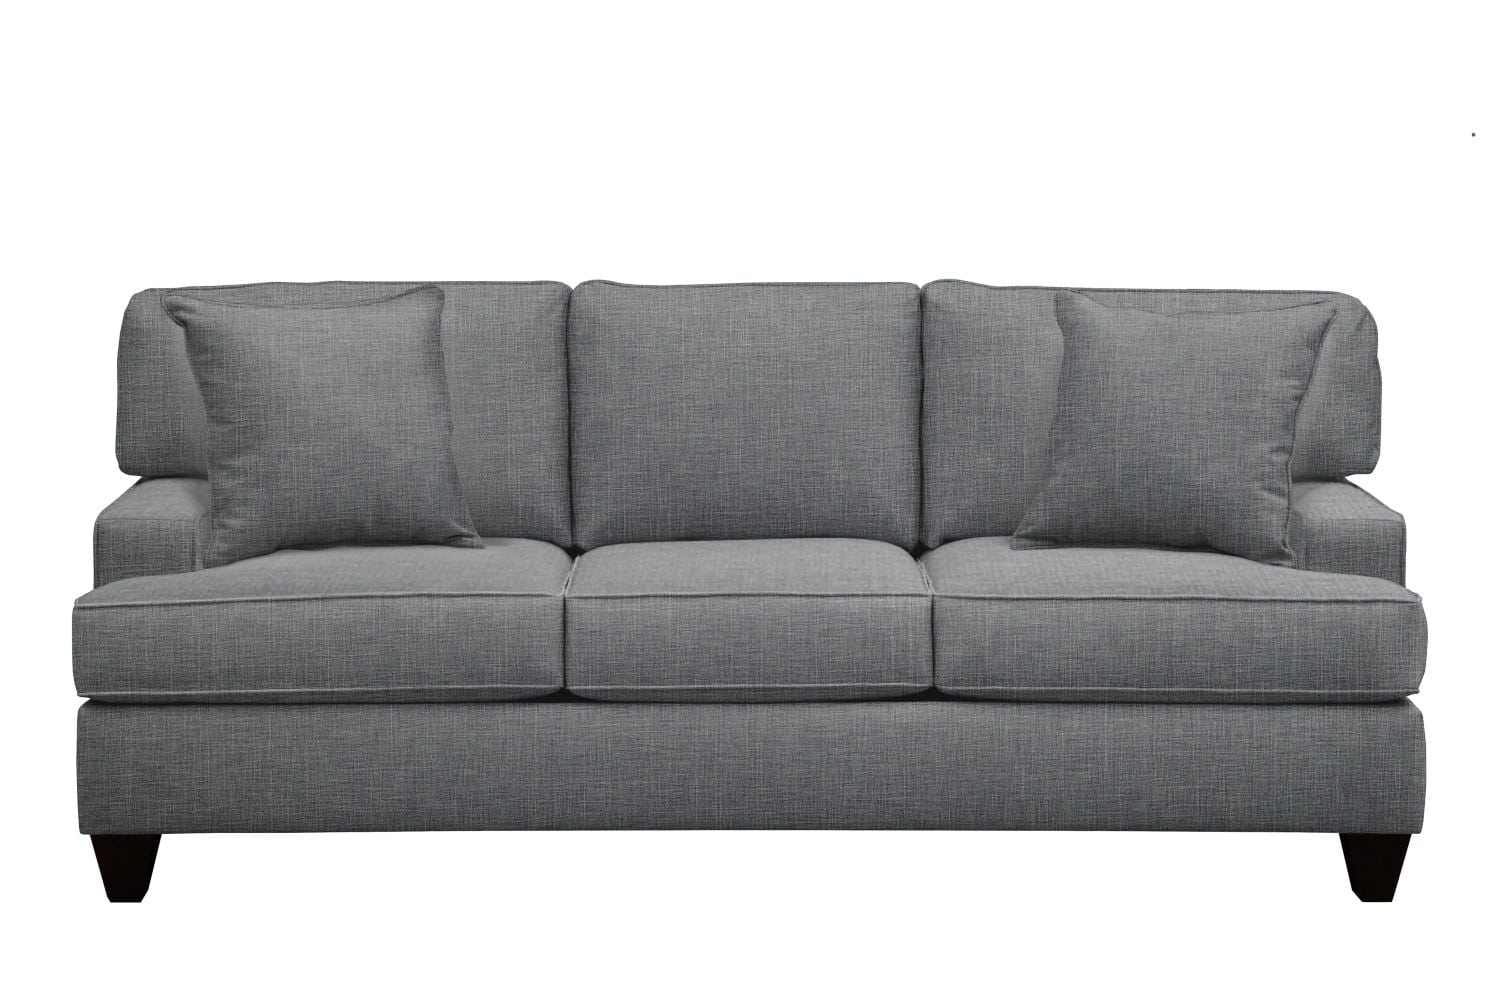 "Living Room Furniture - Conner Track Arm Sofa 87"" Milford II Charcoal w/ Milford II Charcoal  Pillow"